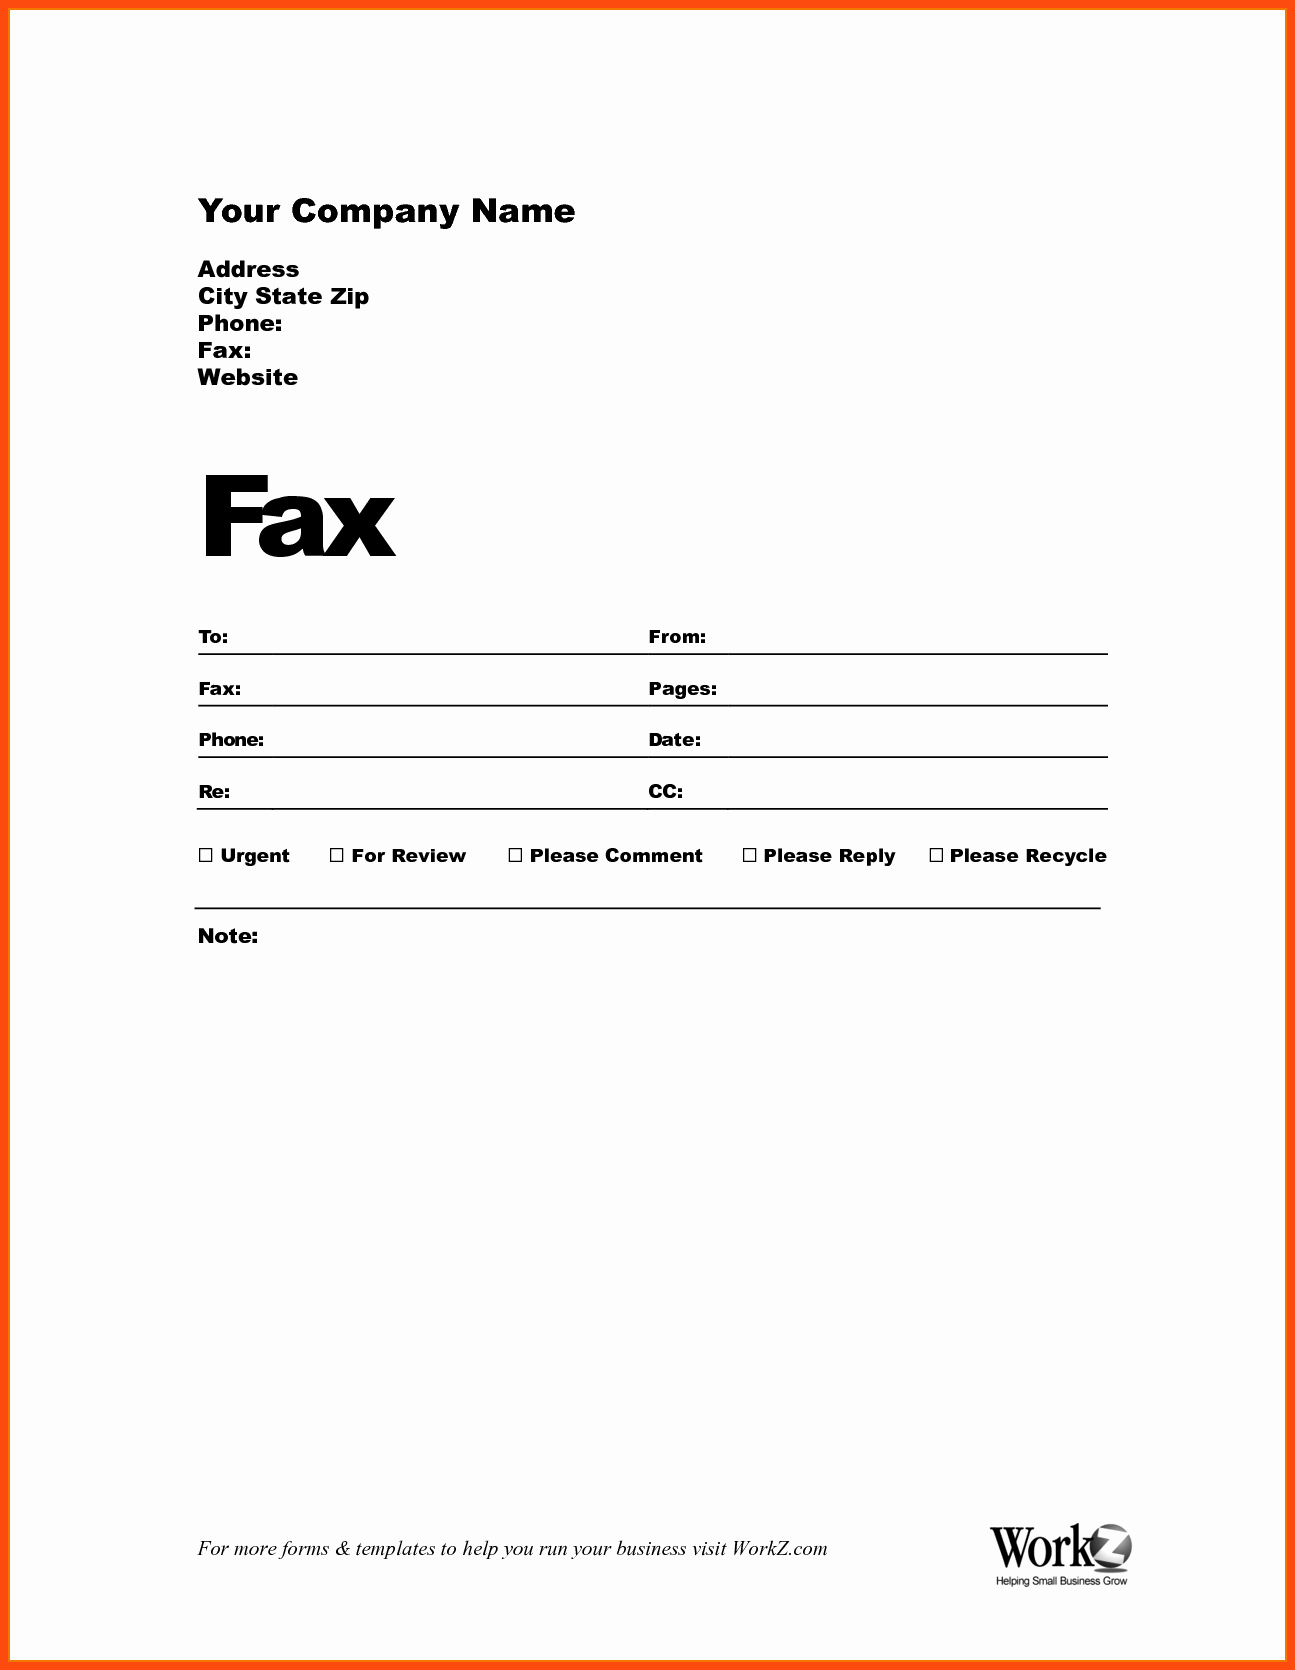 Print A Fax Cover Sheet Lovely How to Fill Out A Fax Cover Sheet